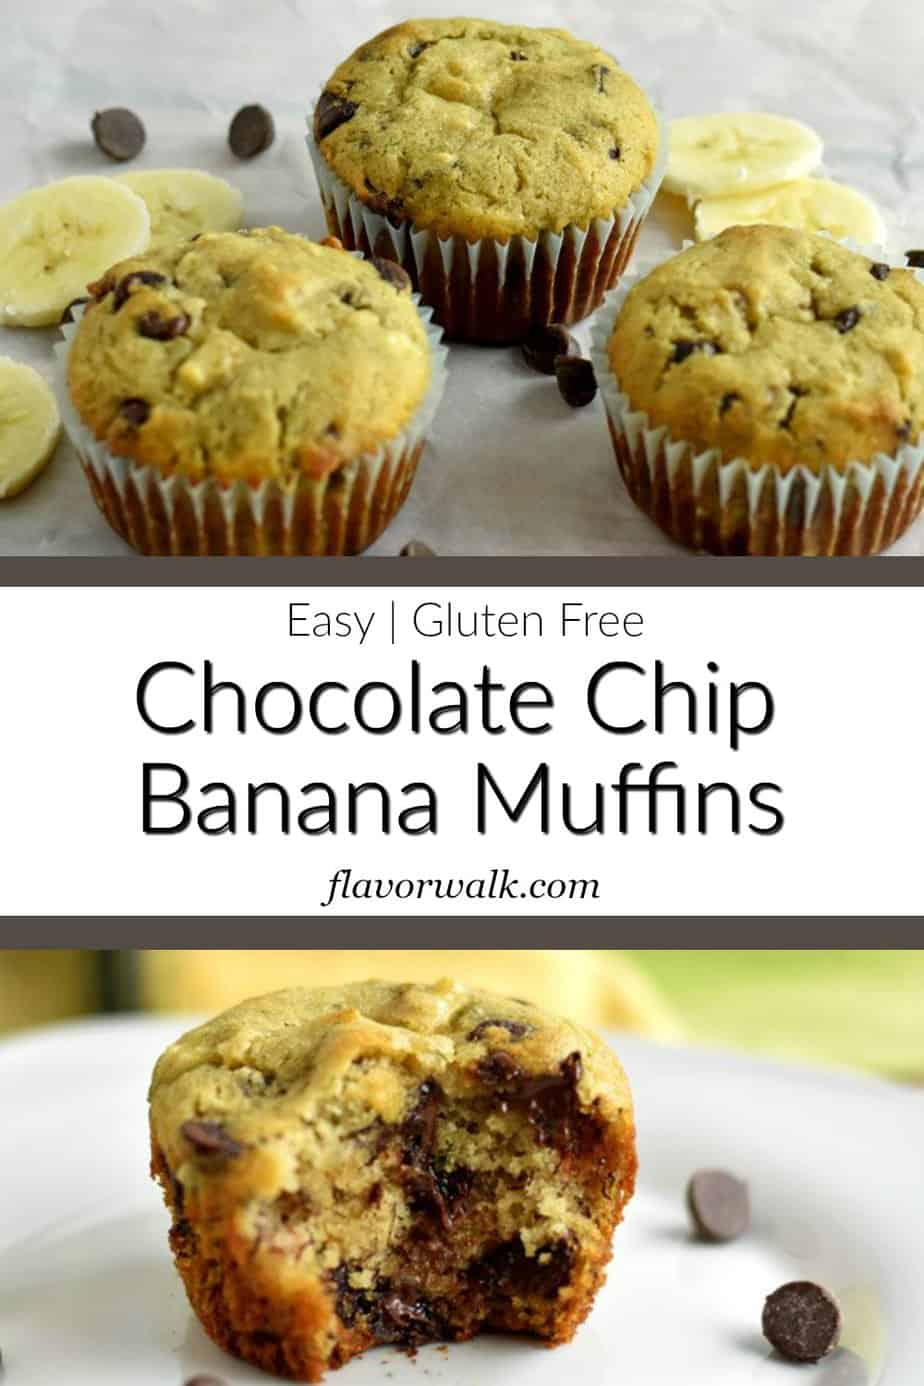 Top image is 3 gluten free chocolate chip banana muffins surrounded by chocolate chips and slices of banana, middle image is a text overlay, bottom image is a gluten free chocolate chip banana muffin missing a bite.